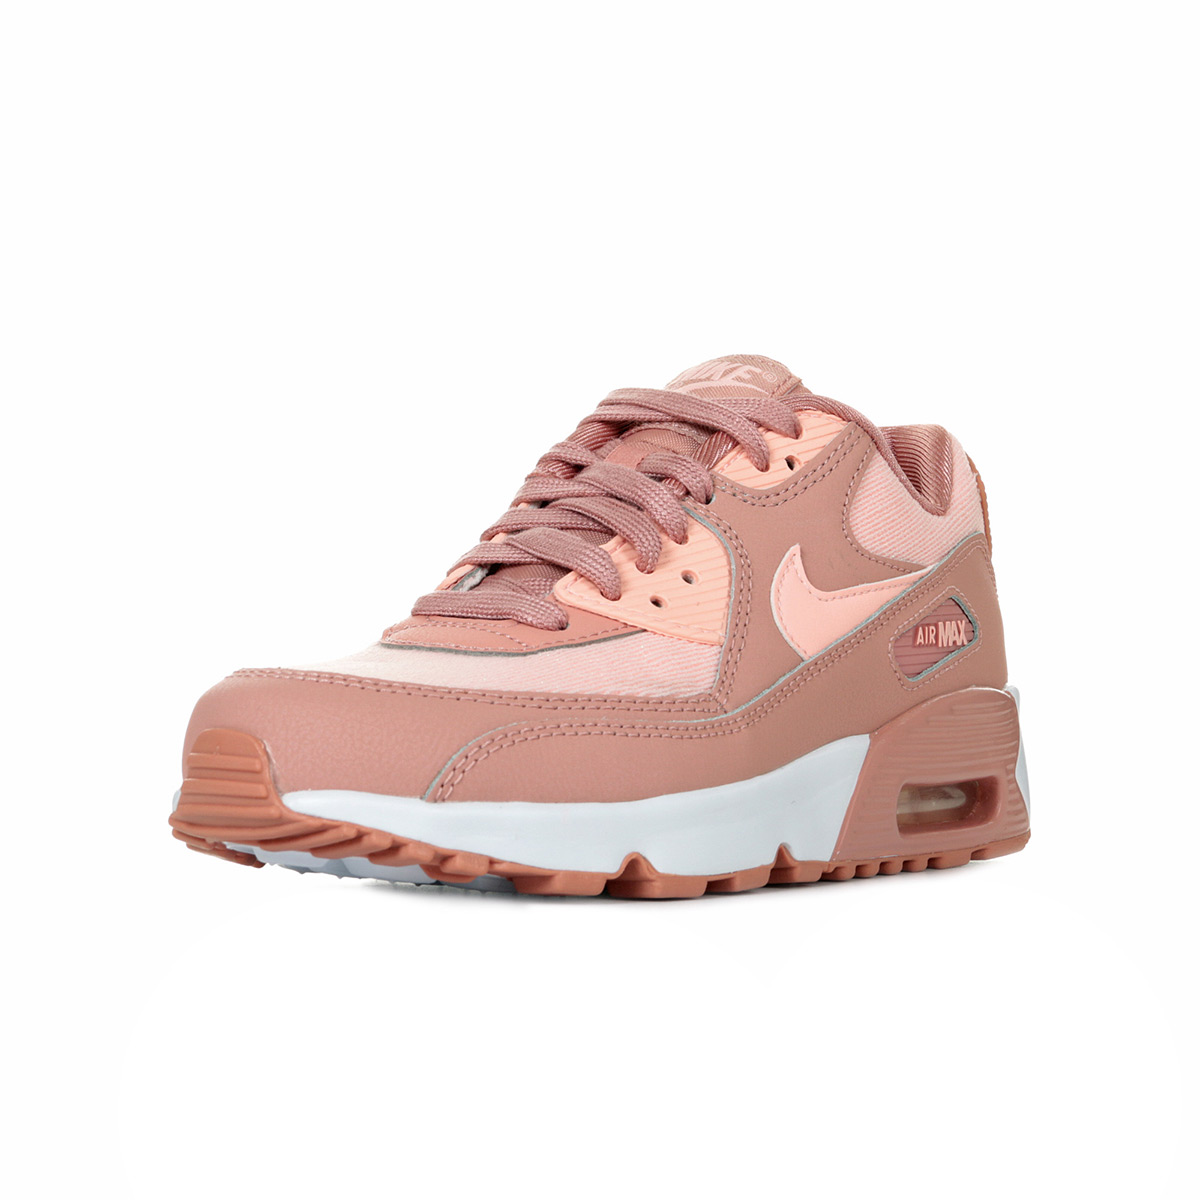 Chaussures Baskets Nike femme Air Max 90 Mesh SE (GS) taille Rose Cuir Lacets